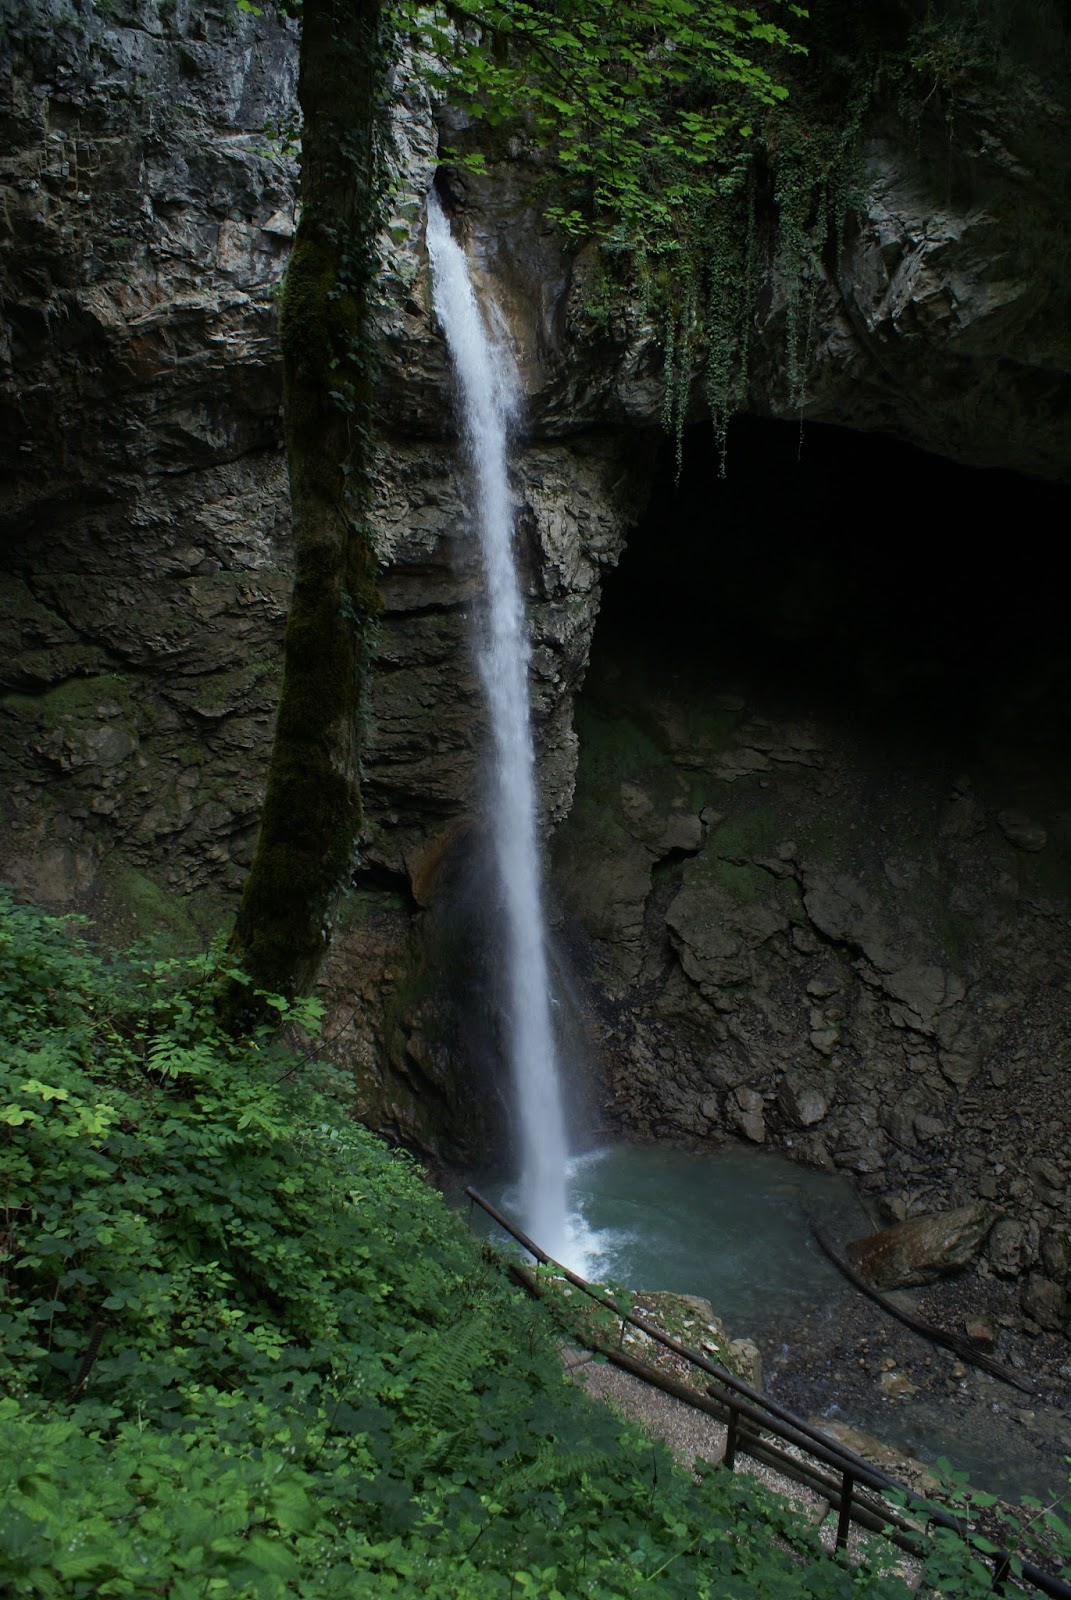 seythenex cascade grotte cave waterfall savoie mont blanc france alpes alps